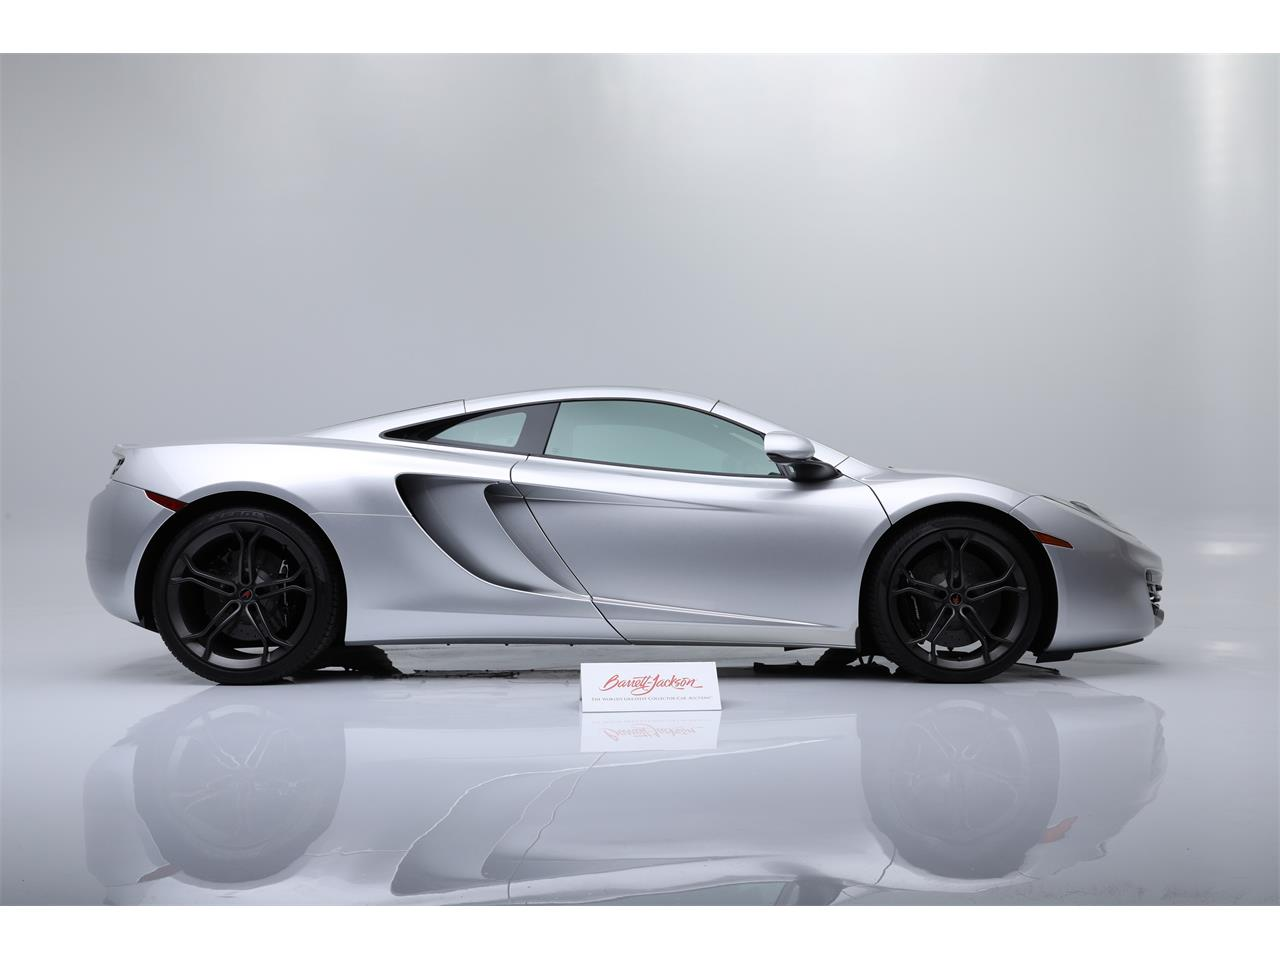 2012 McLaren MP4-12C (CC-1368191) for sale in Scottsdale, Arizona